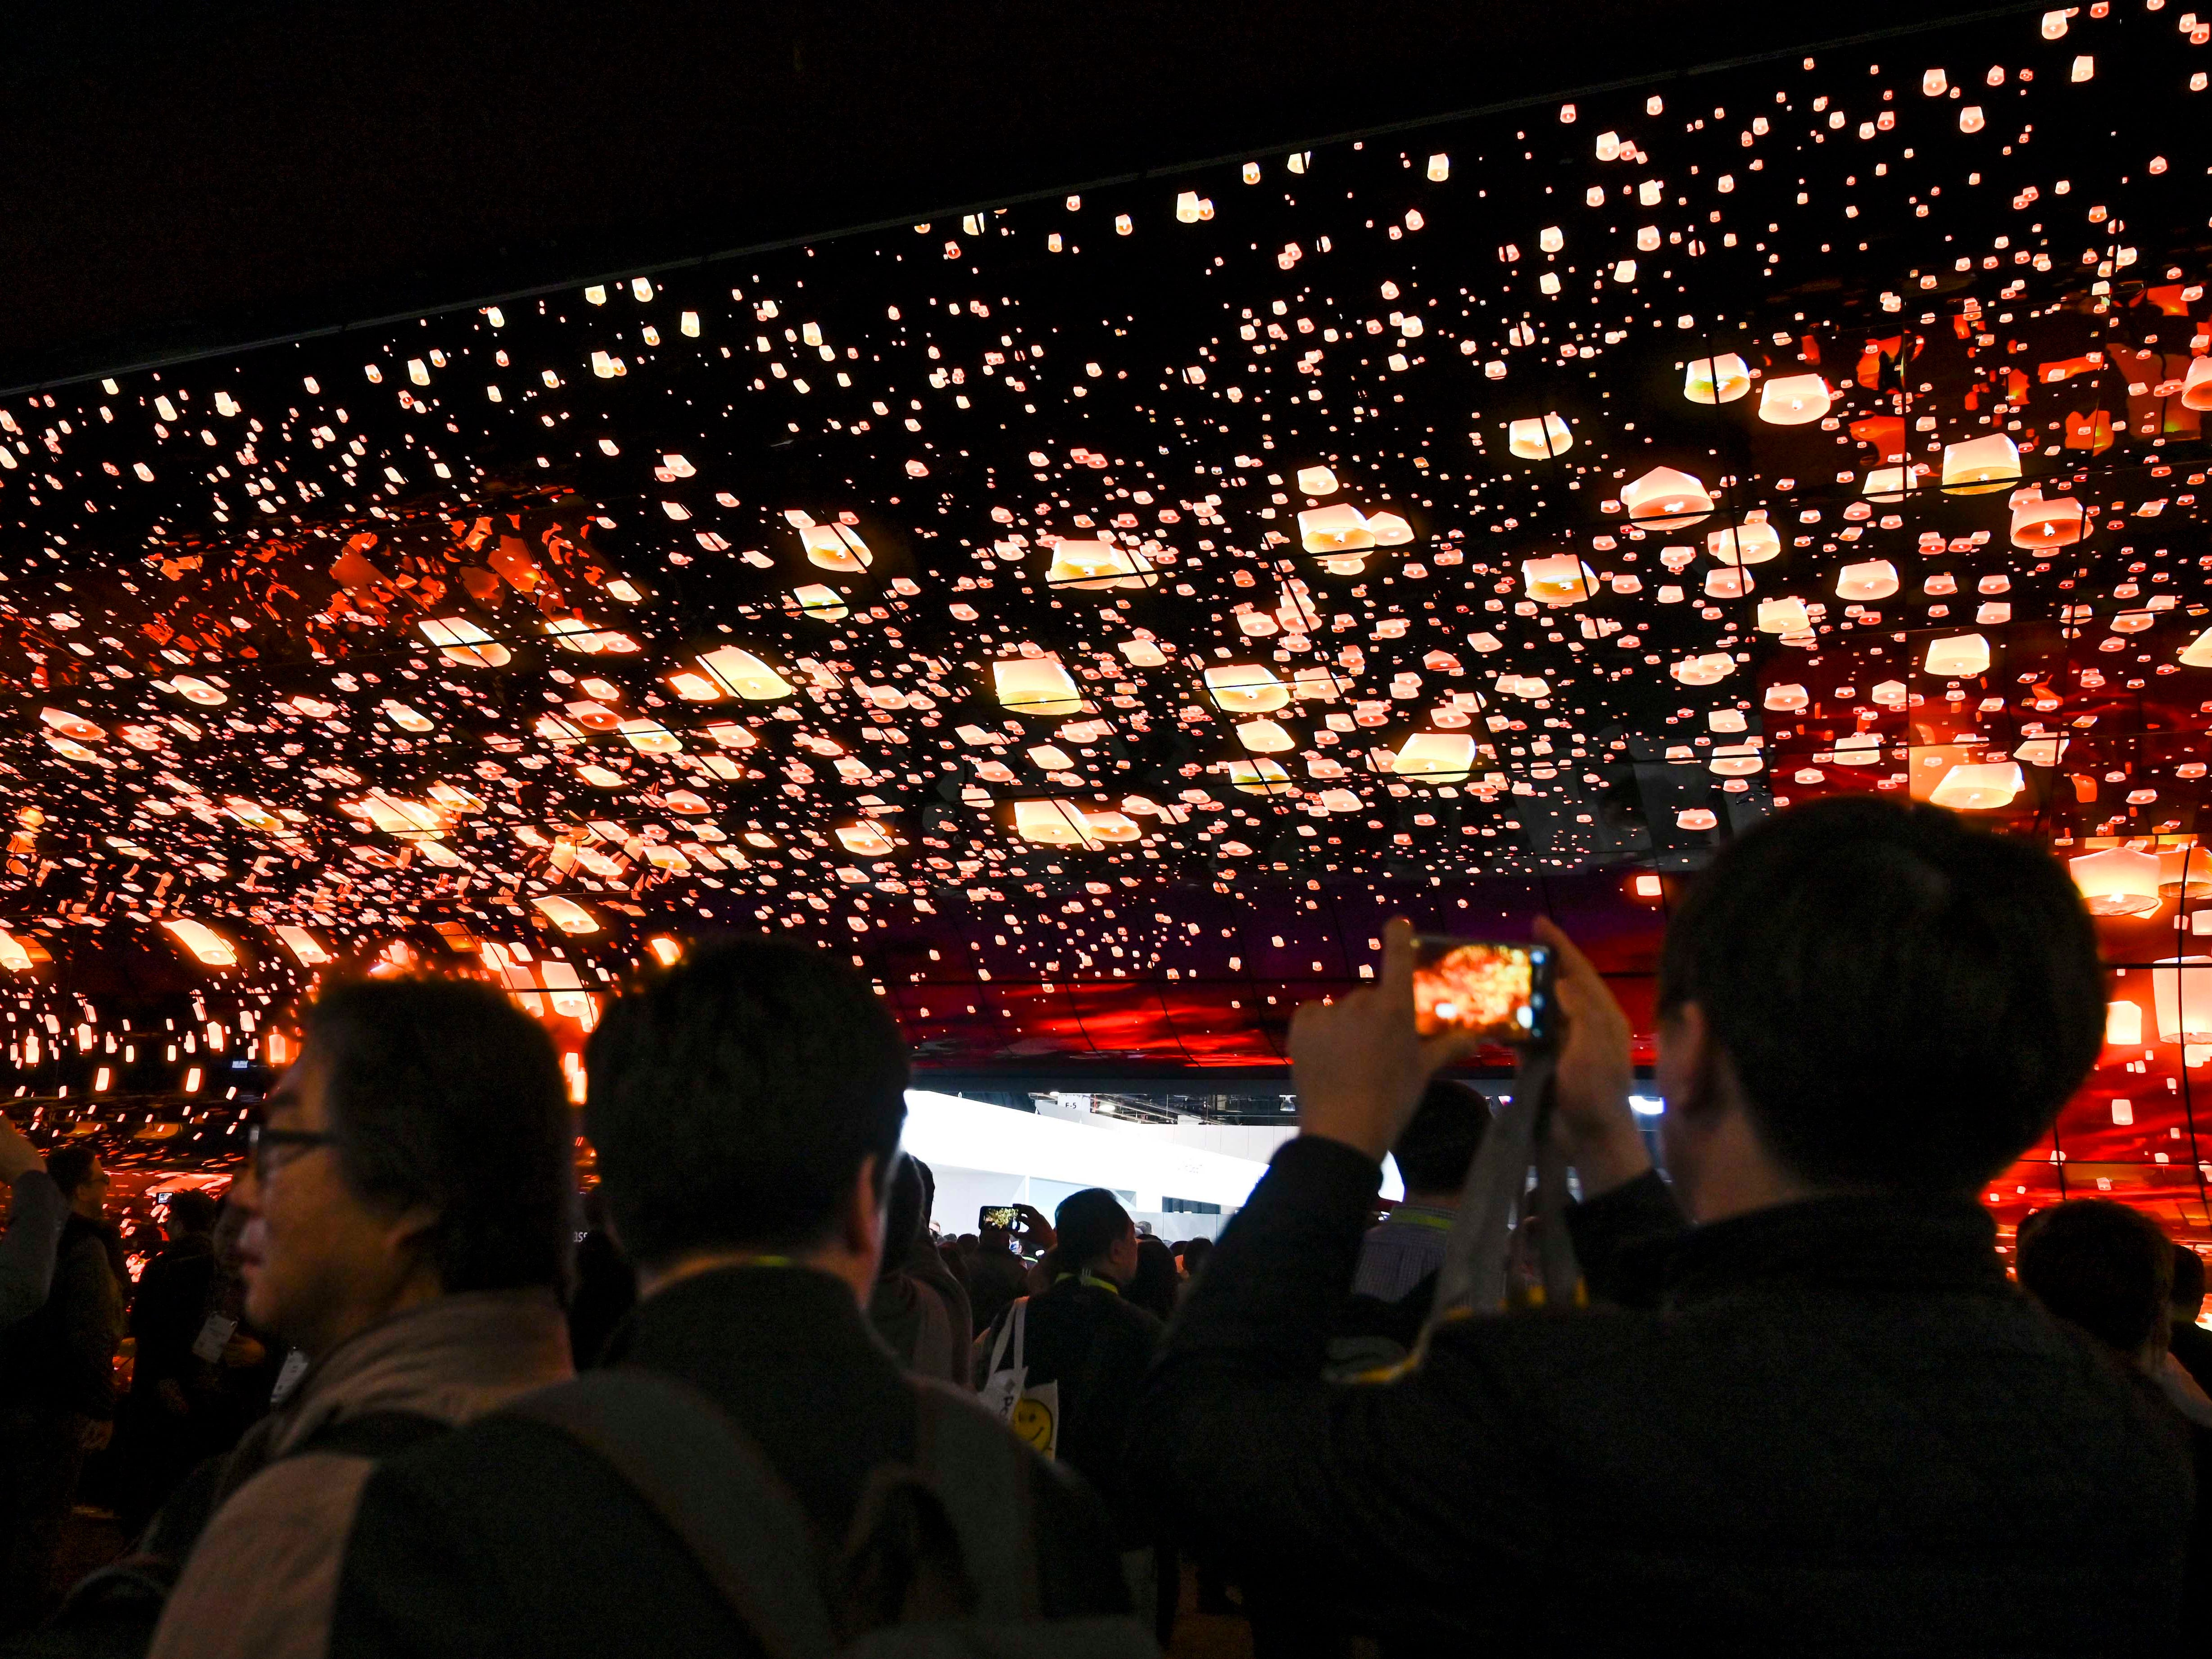 Crowds entering the LG display are greeted with a huge video array.